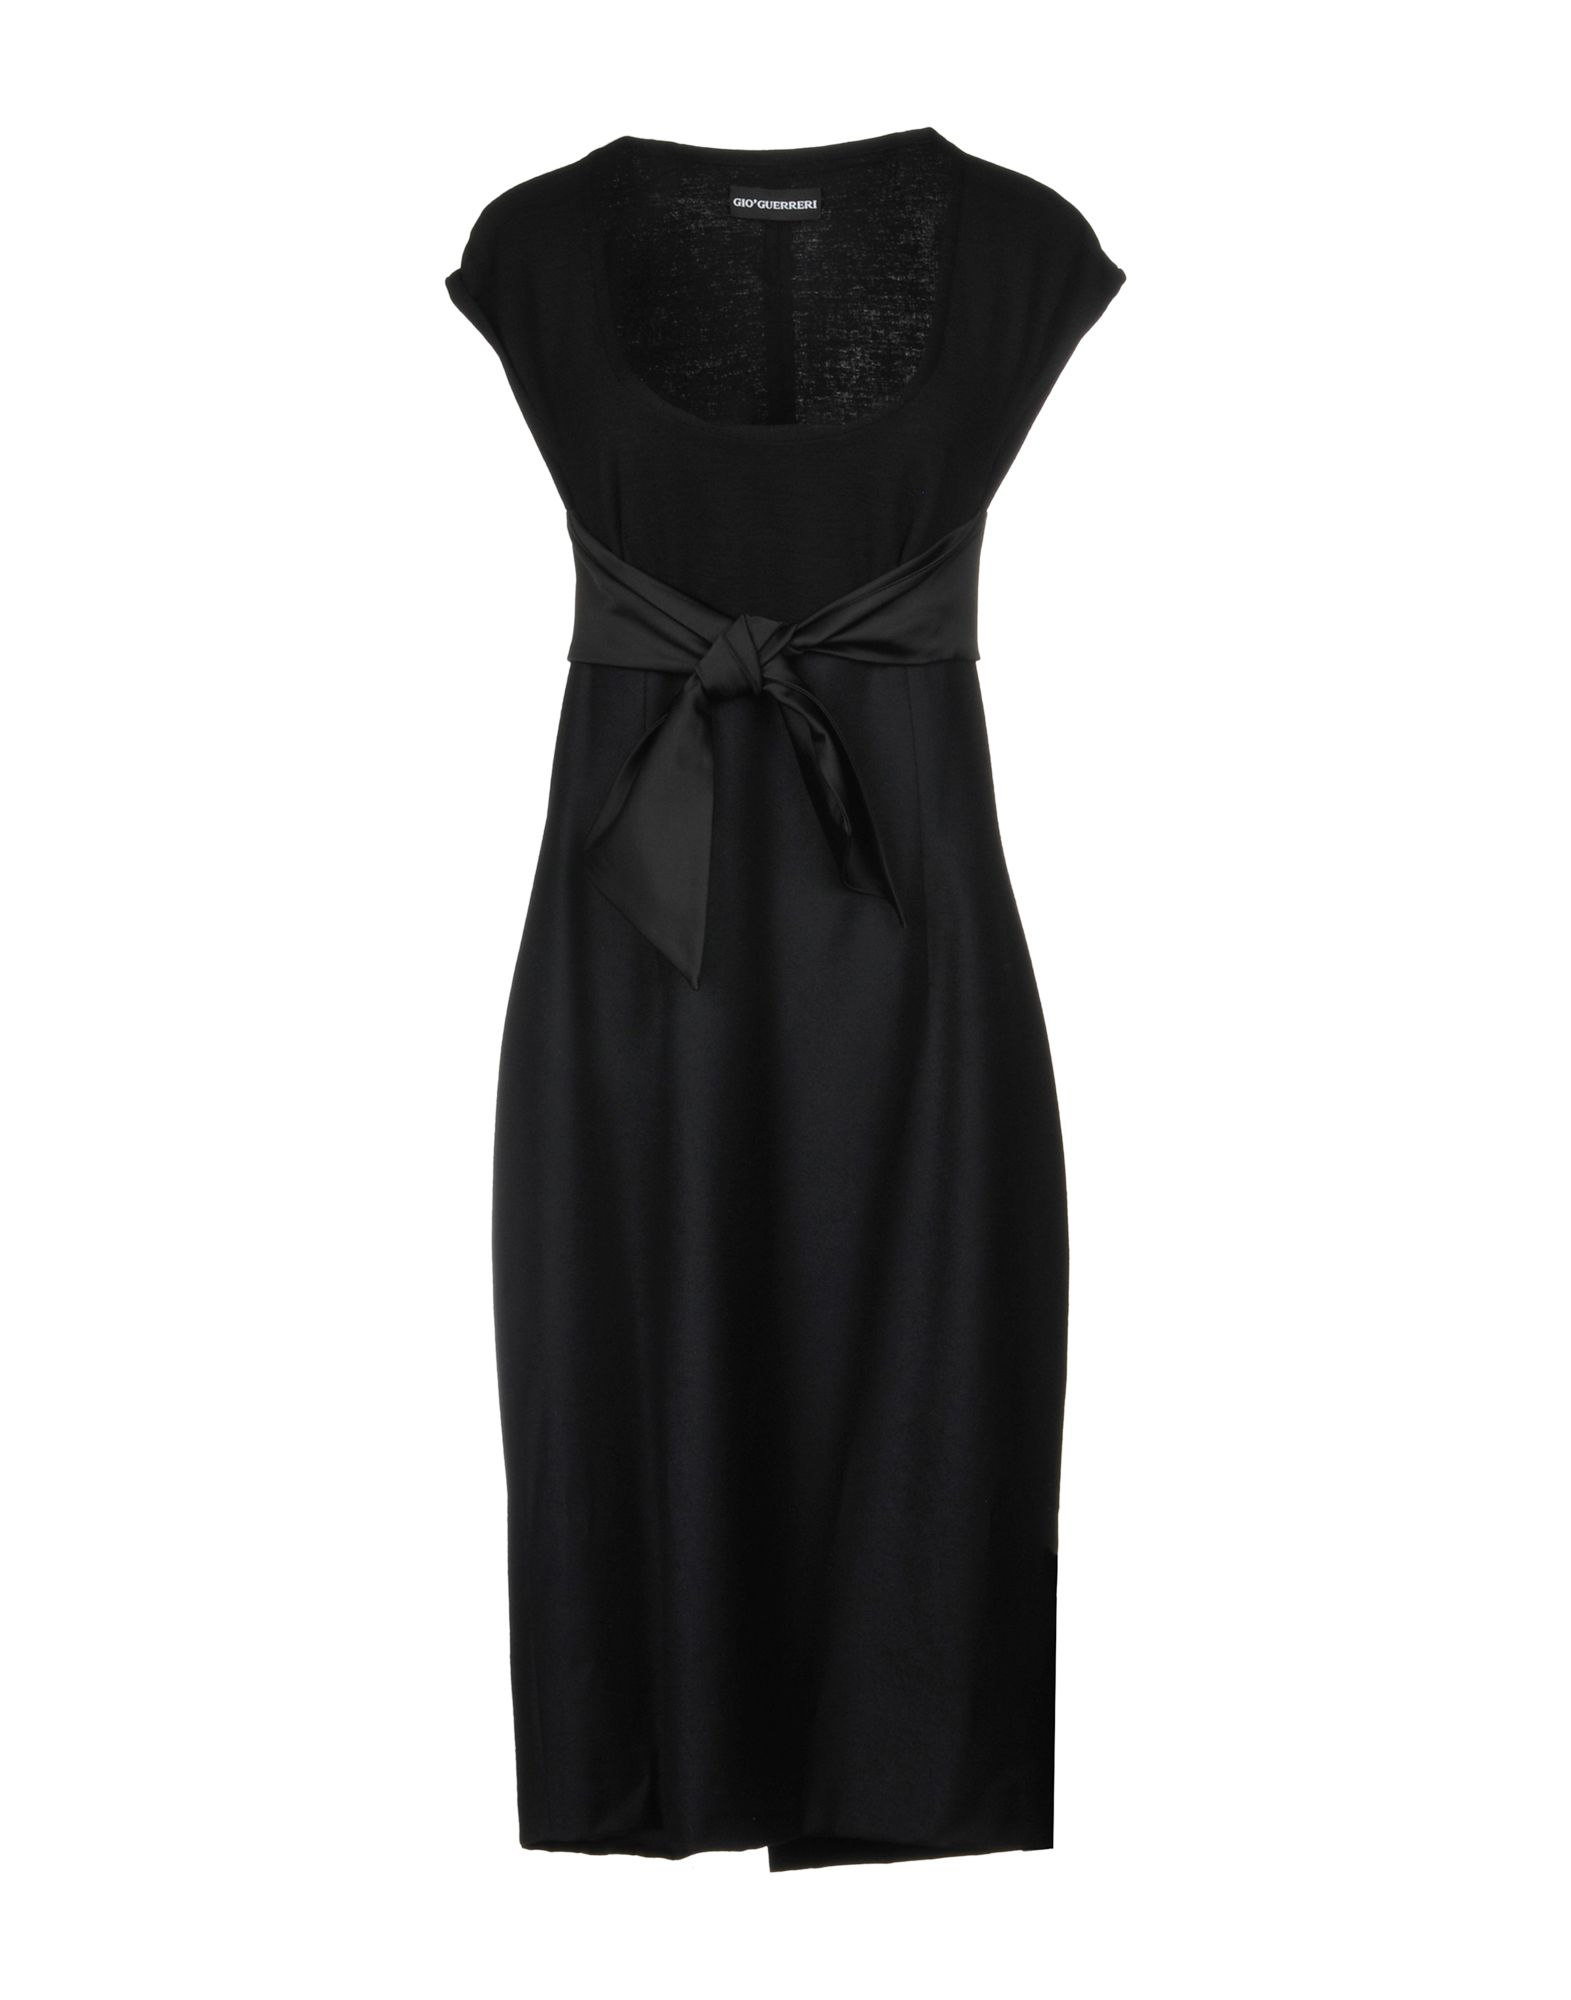 GIO' GUERRERI Knee-Length Dress in Black